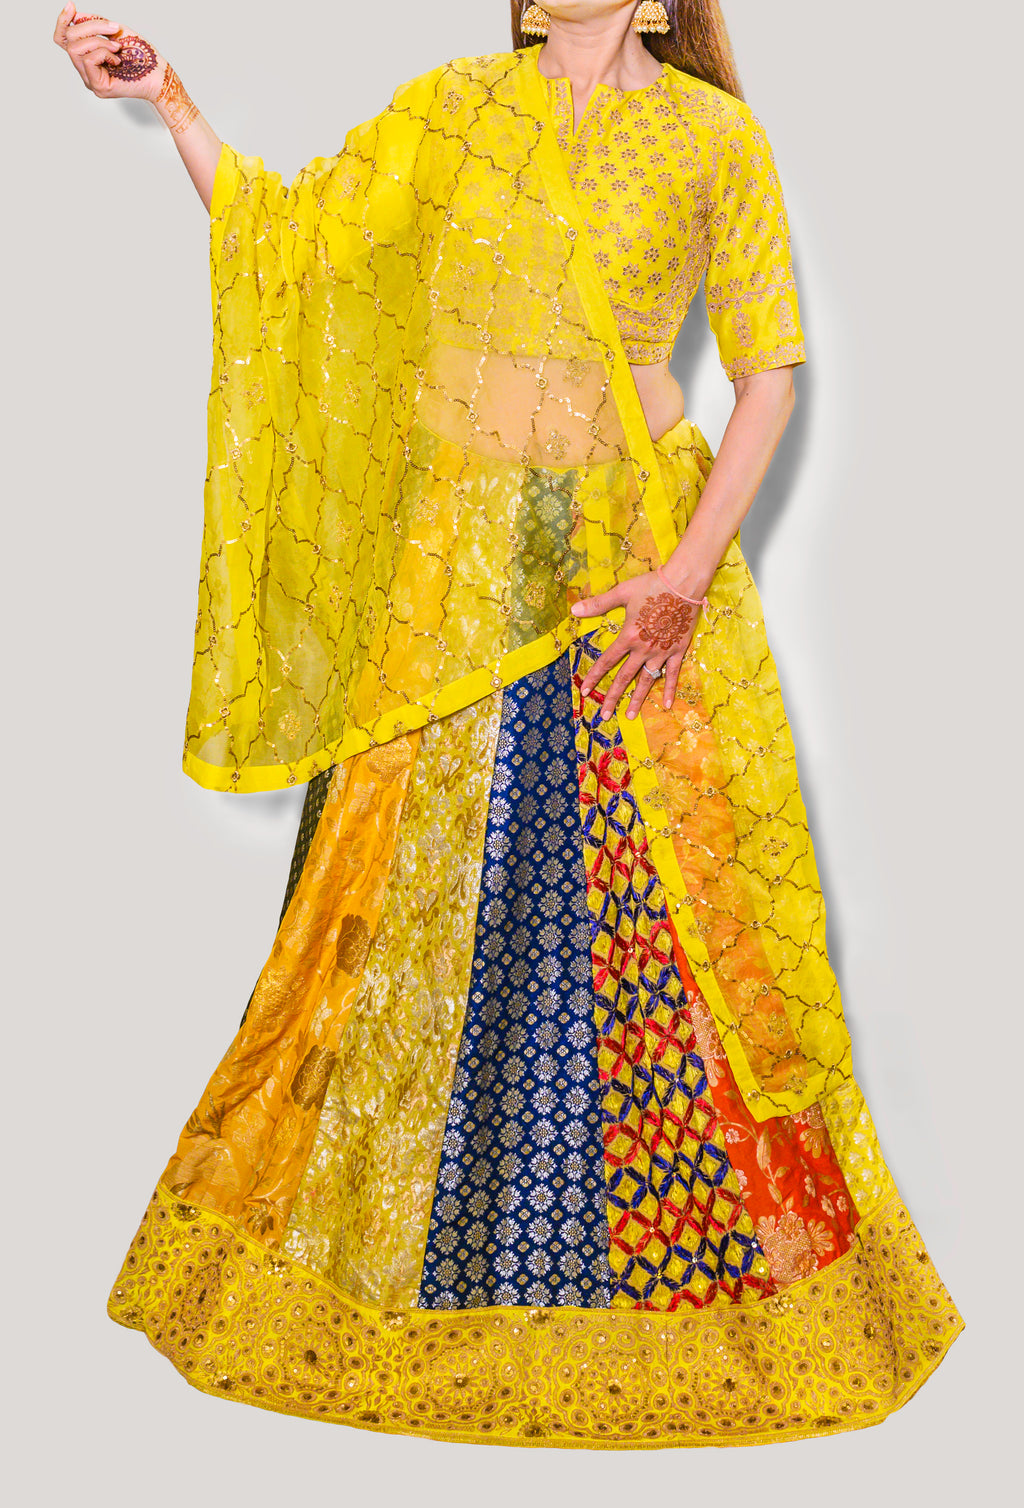 SABYASACHI INSPIRED MULTIPANEL EMROIDERED LEHENGA PAIRED WITH EMROIDERED BLOUSE AND DUPATTA